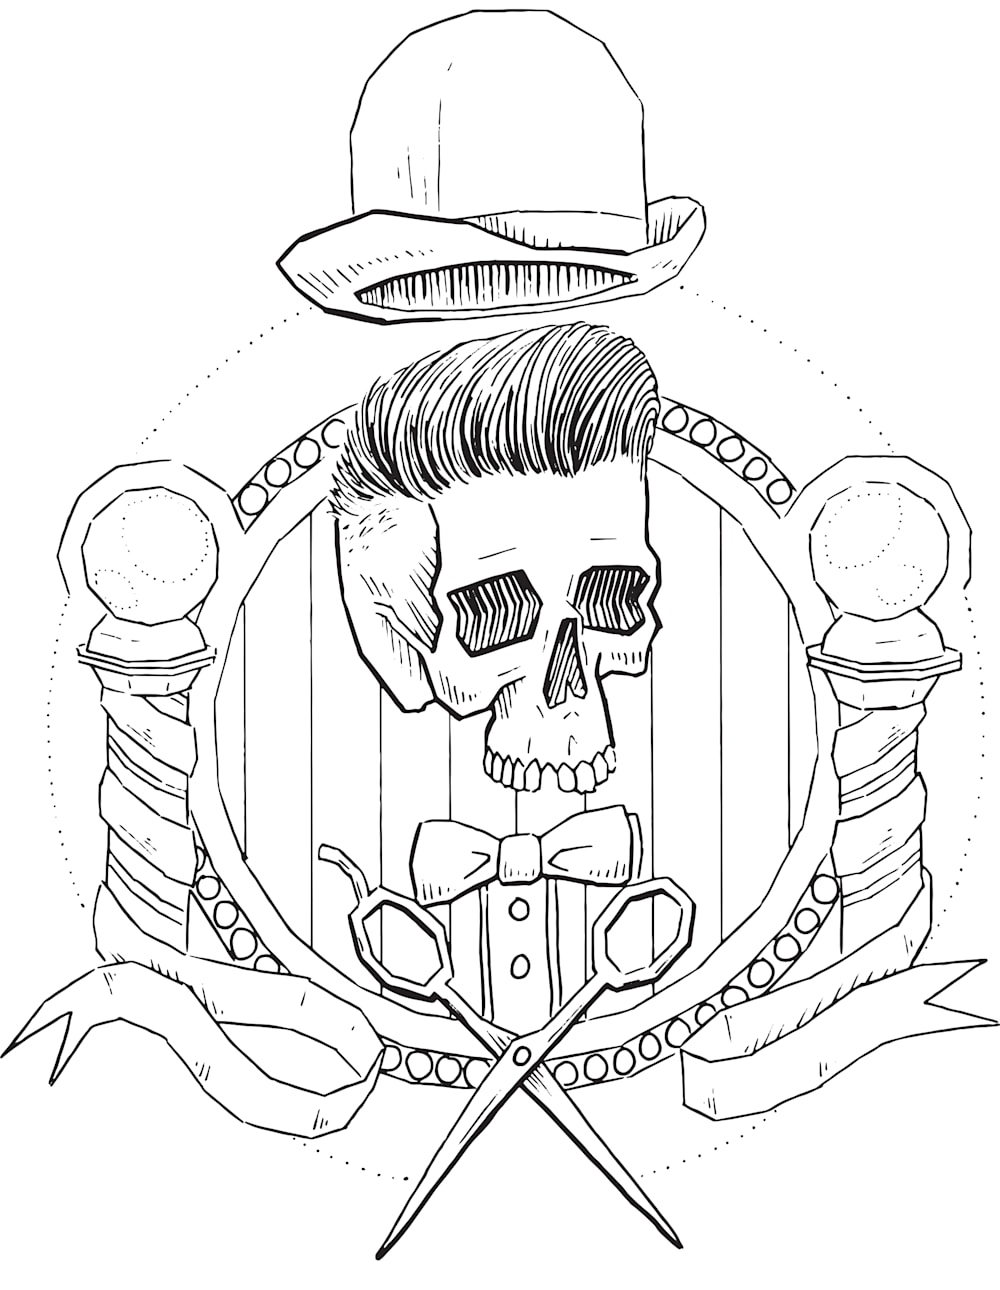 Coloring pages for boys. Print for free, 100 images | 1290x1000